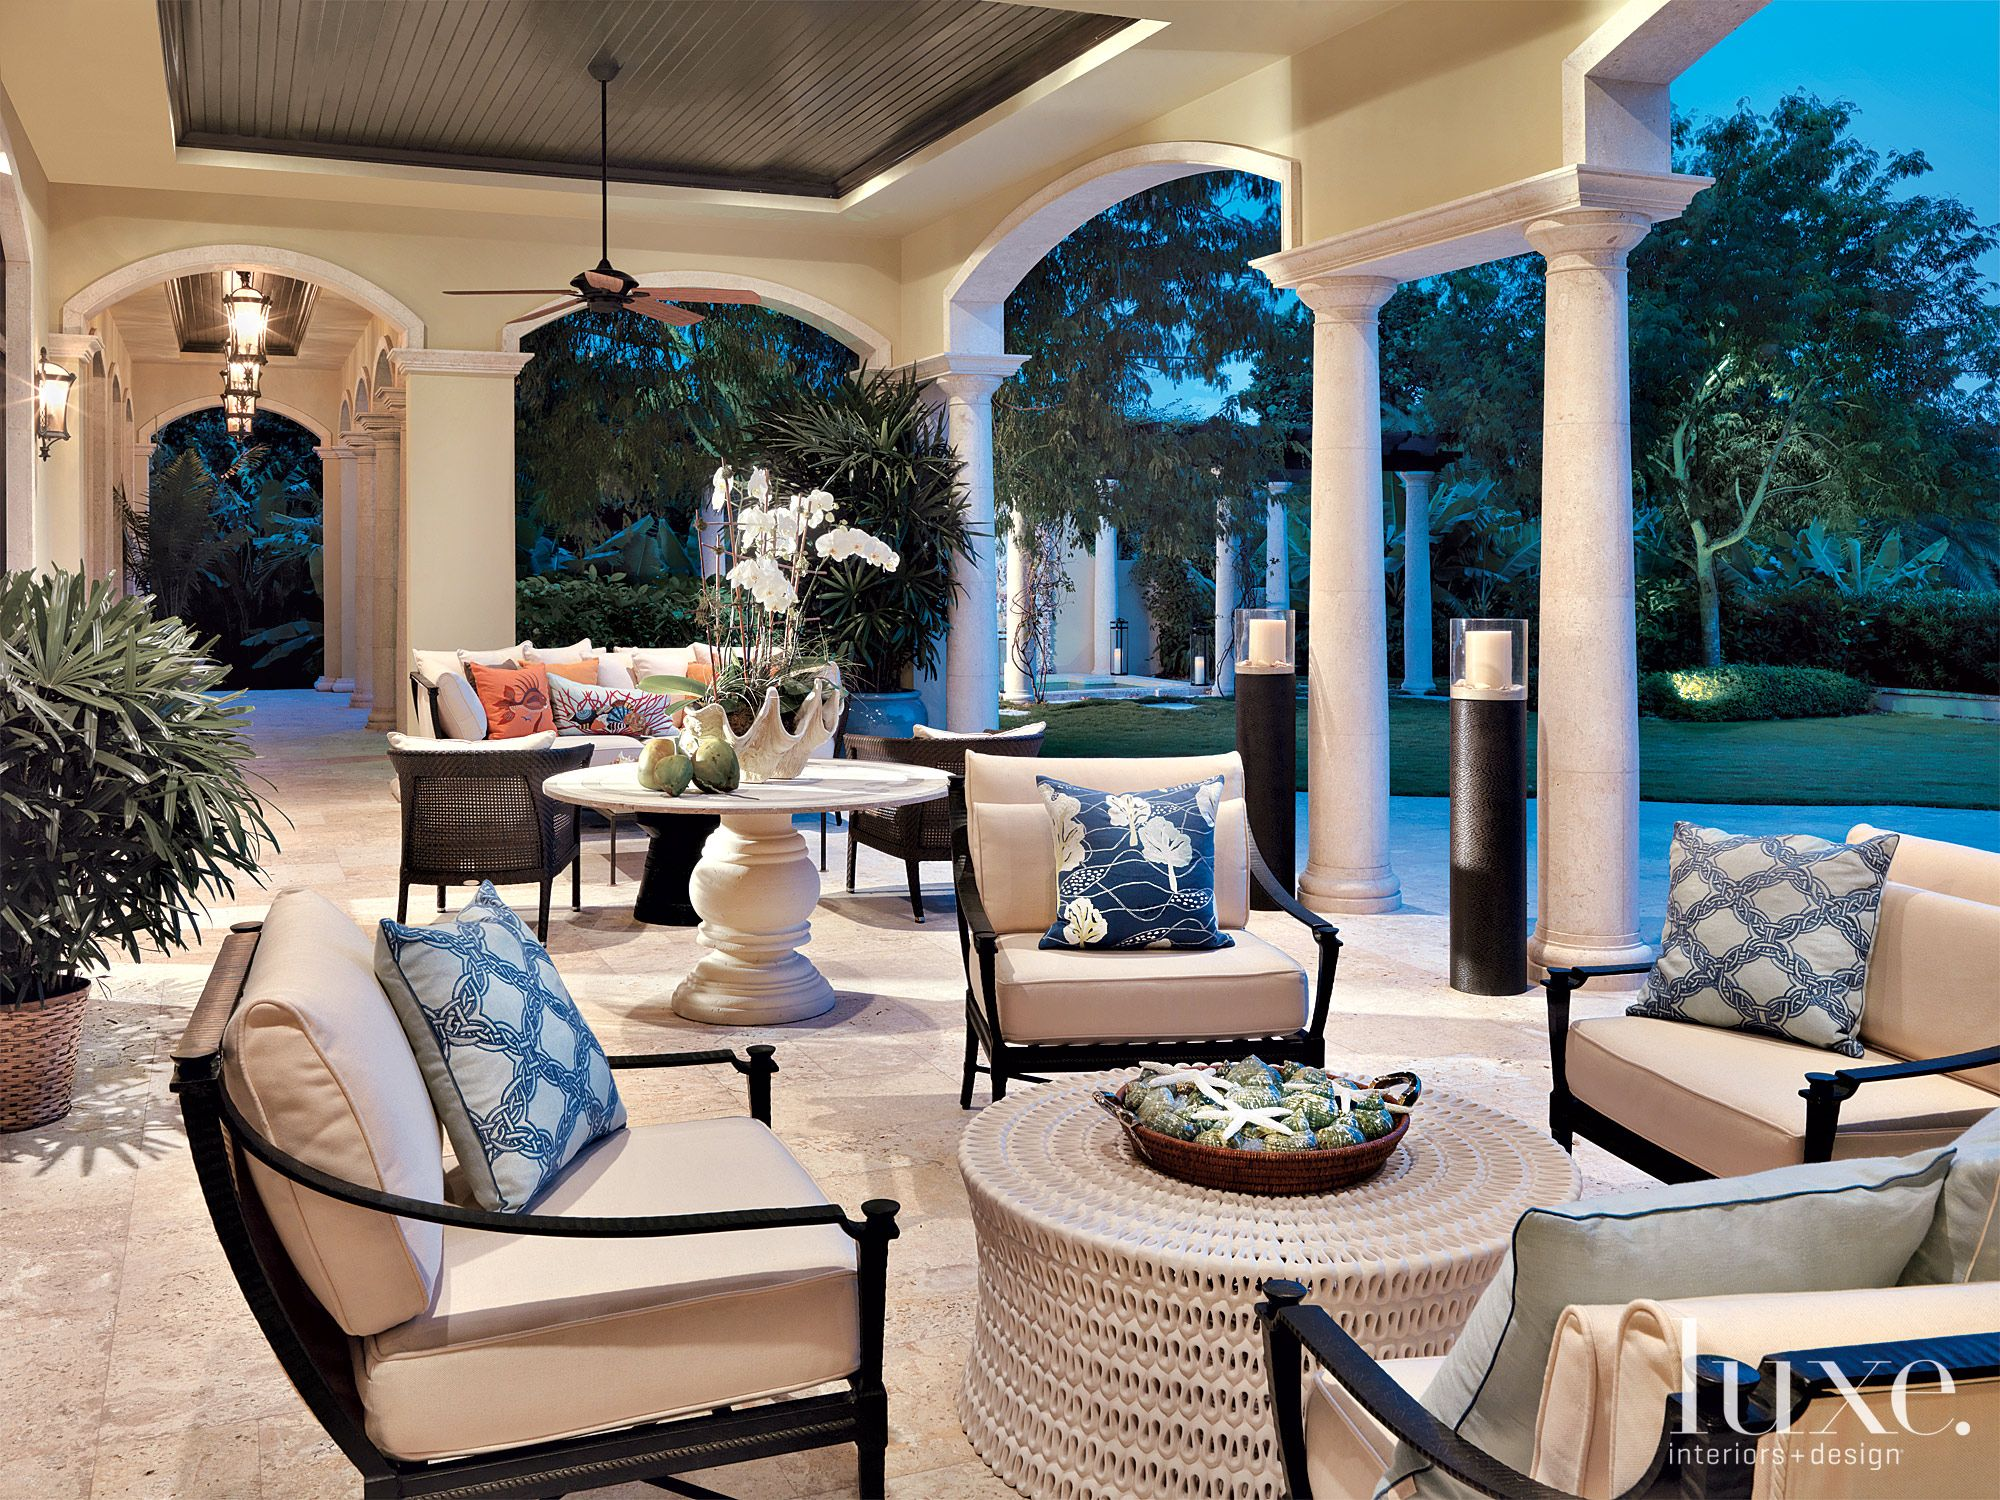 Middletown, NJ | Living Room Decor | Outdoor rooms, Outdoor